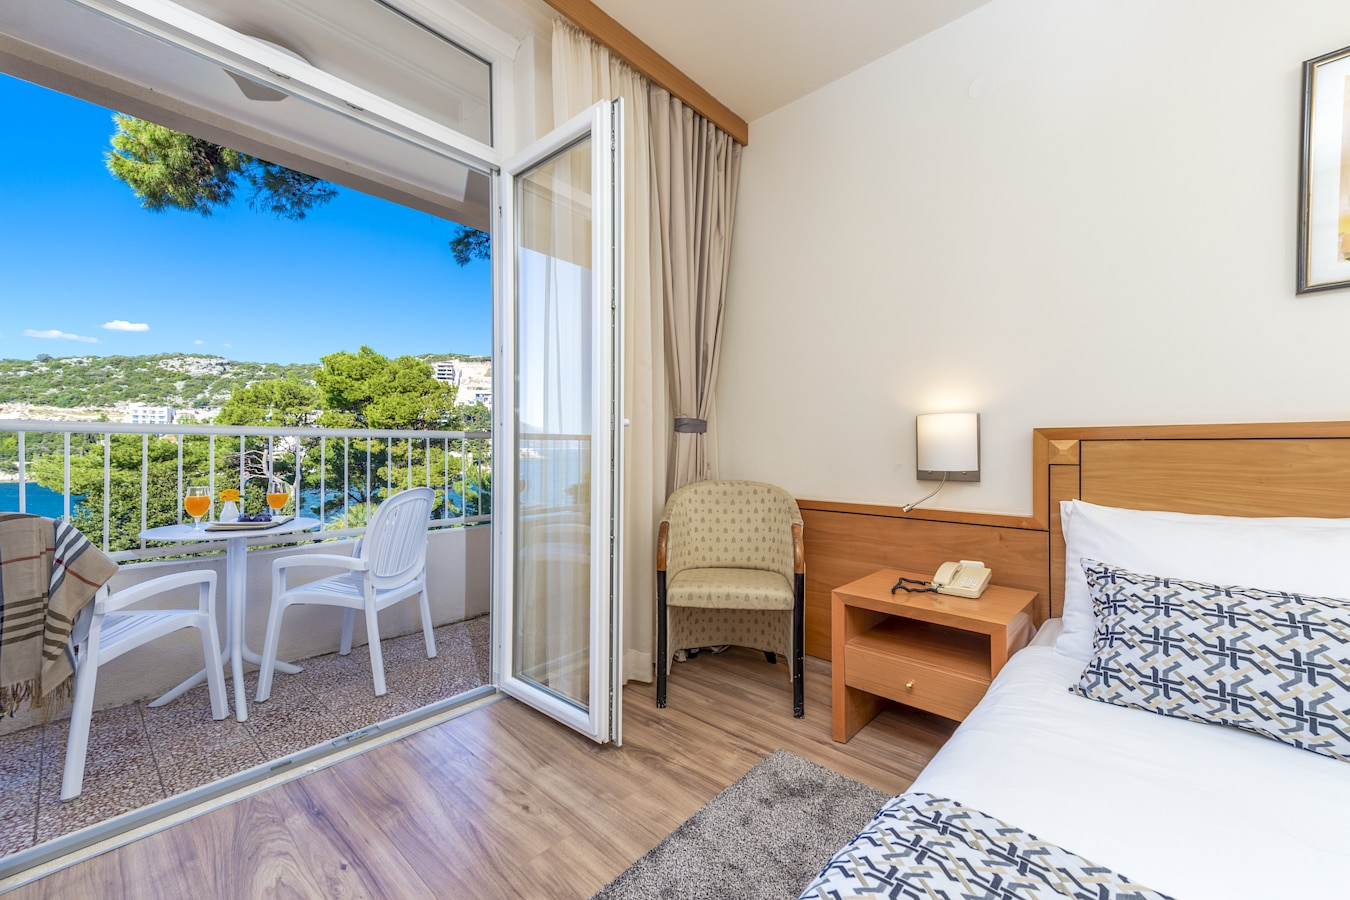 splendid-hotel-double-room-balcony-sea-view-dubrovnik.jpg